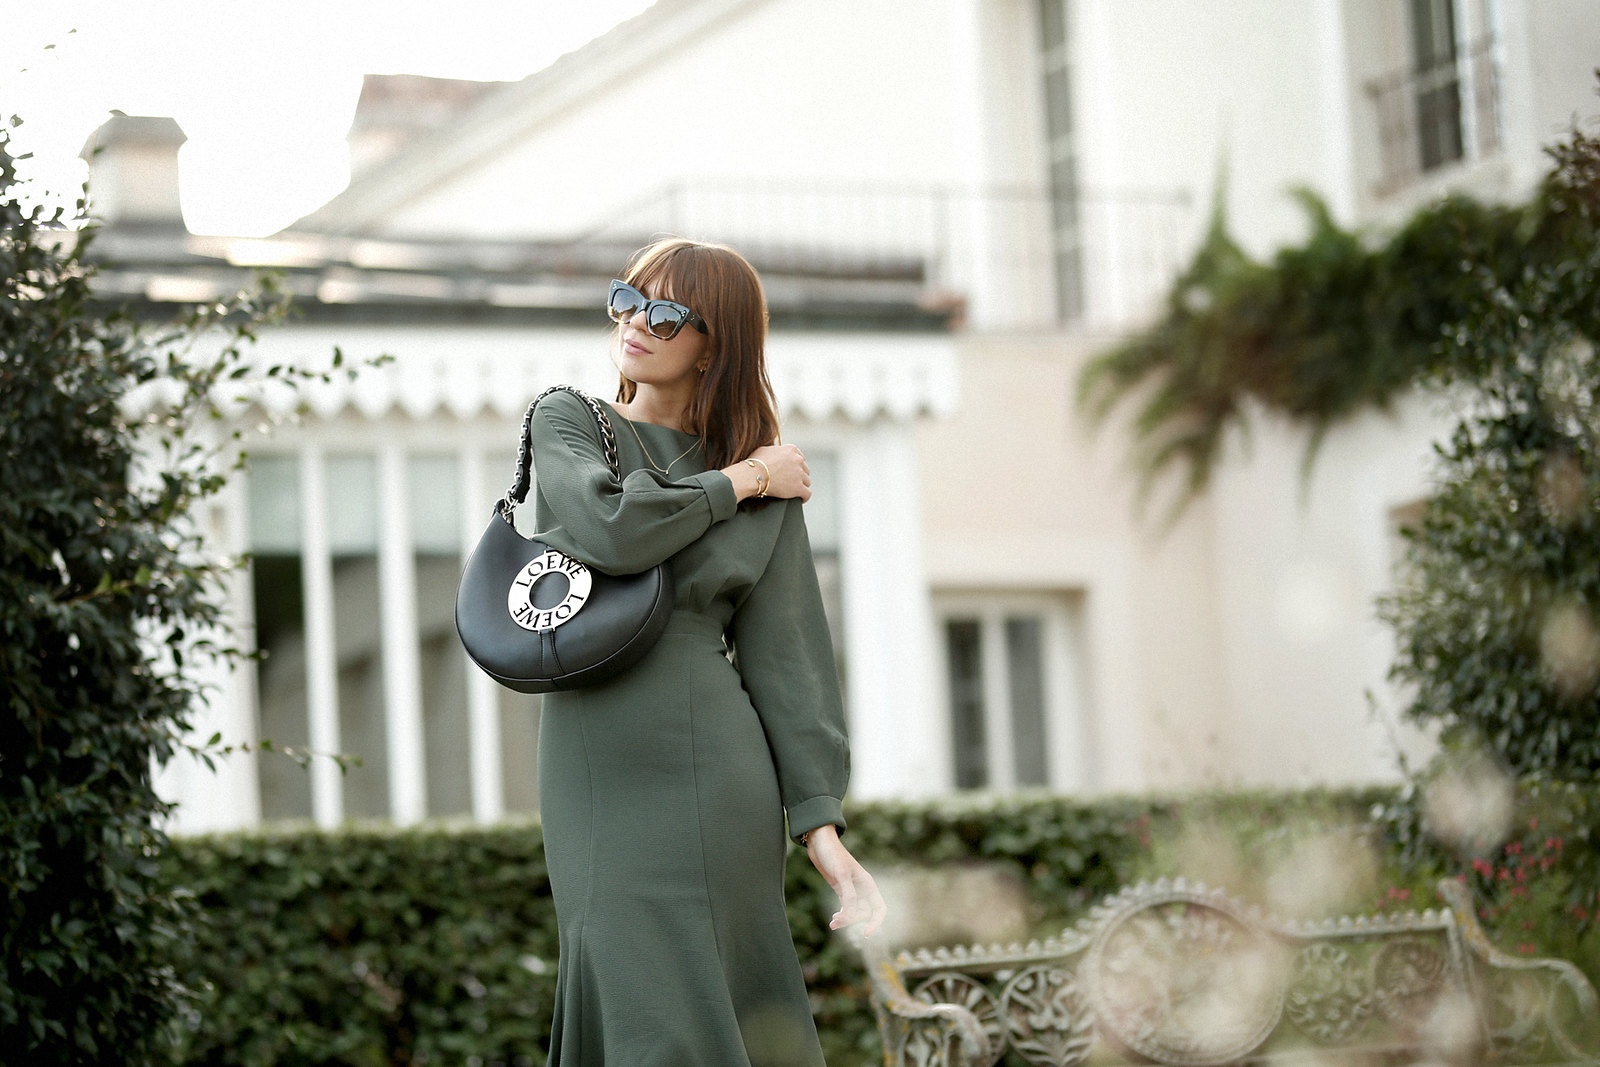 outfit green dress loewe joyce bag breuninger celine sunglasses les sources de caudalie france bordeaux late summer look going out dinner style hermes oran sandals brown minimal french chic parisienne bangs brunette france cats & dogs fashion blogger 8